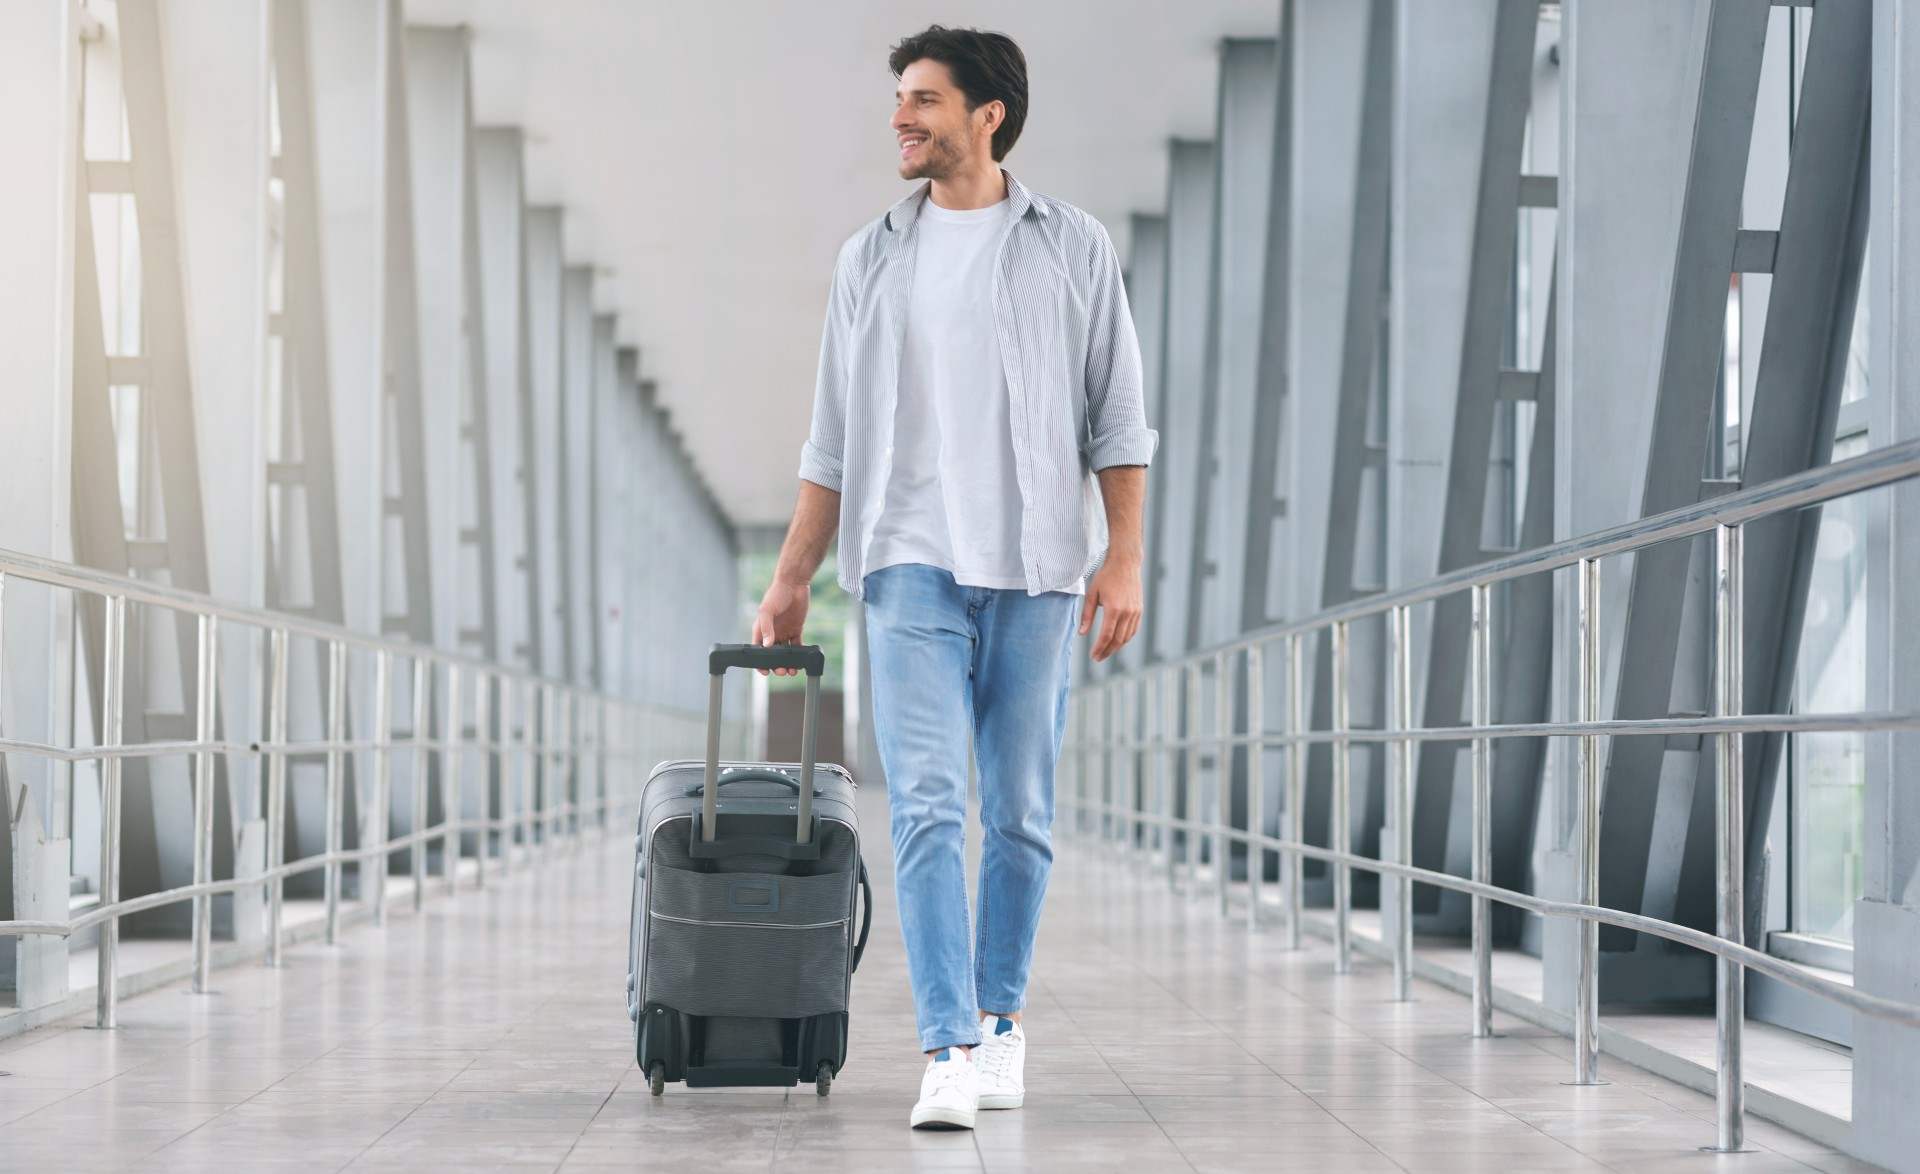 man walking in an airport with a suitcase